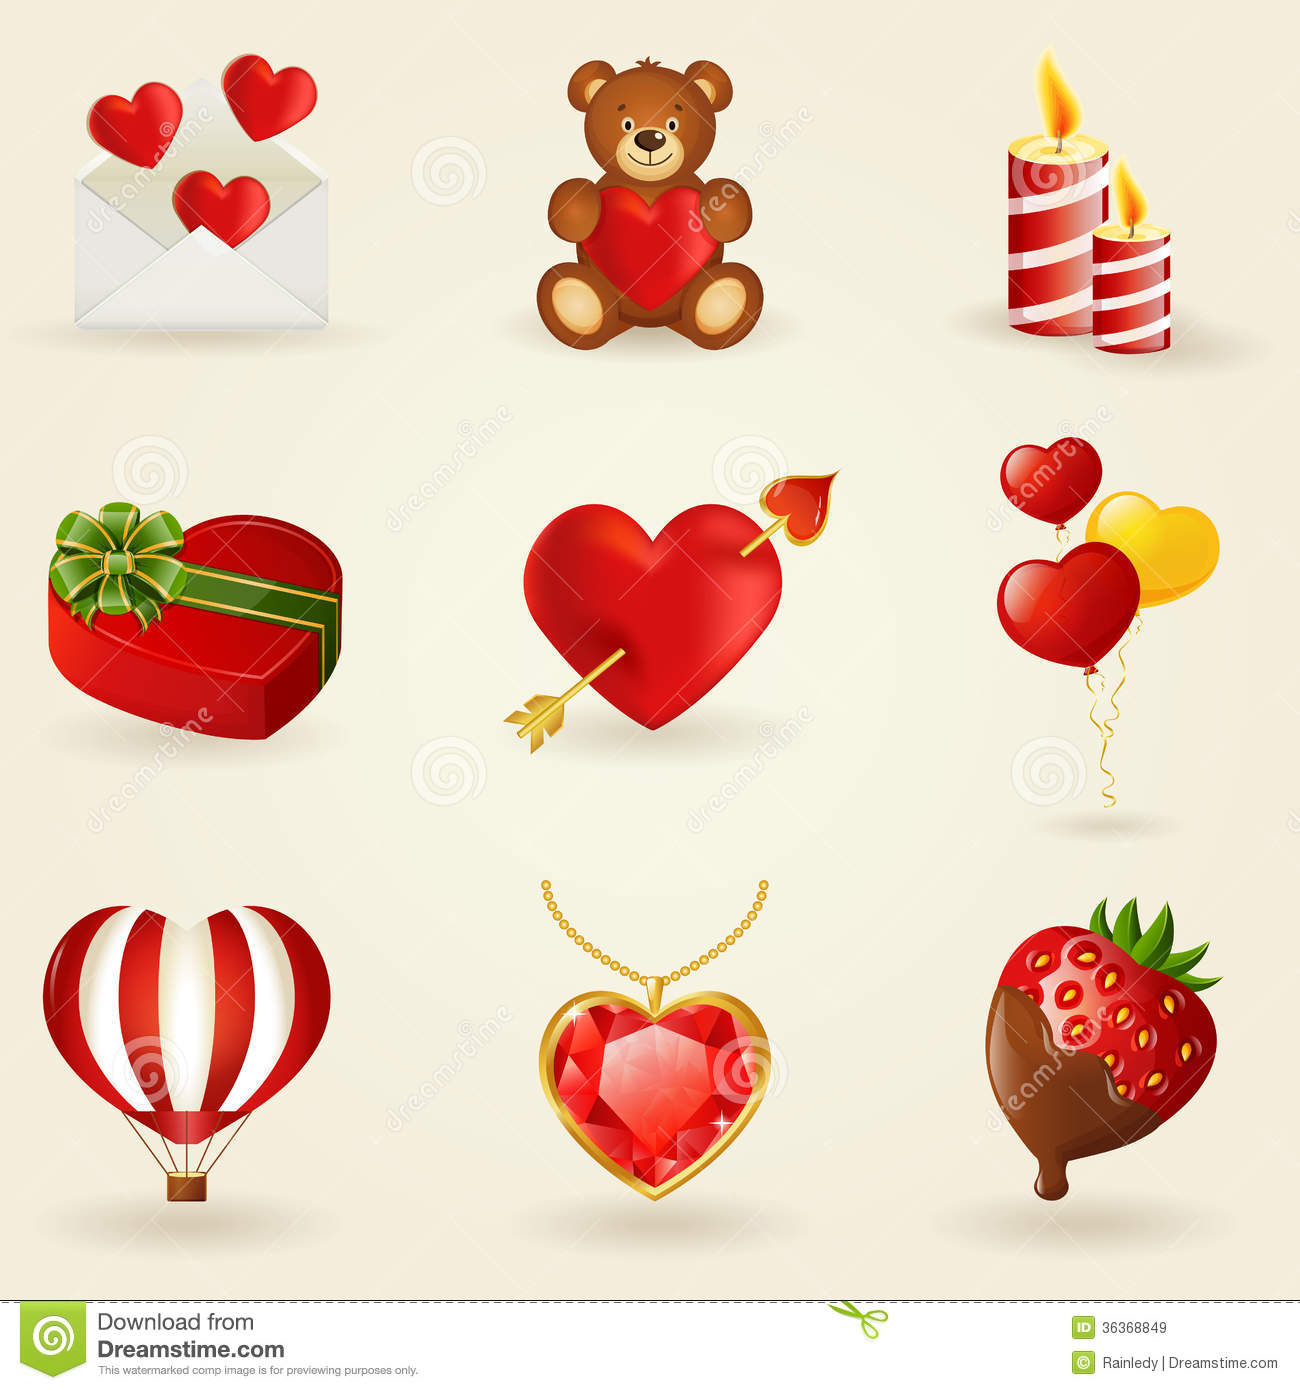 Vector set of love and romantic icons.